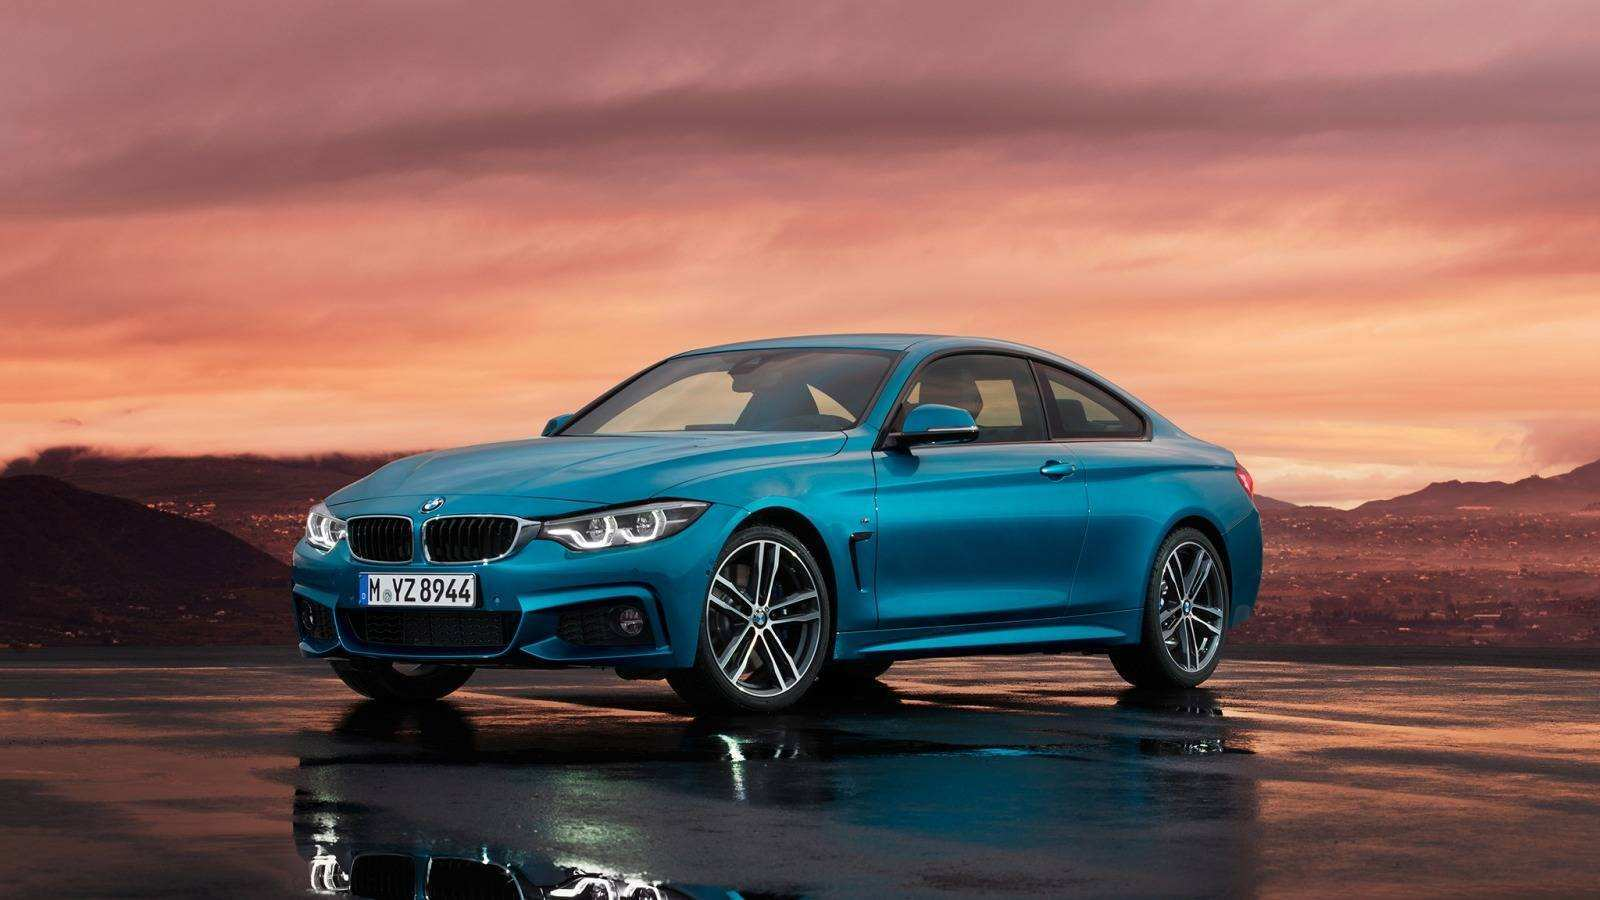 93 A 2019 4 Series Bmw History